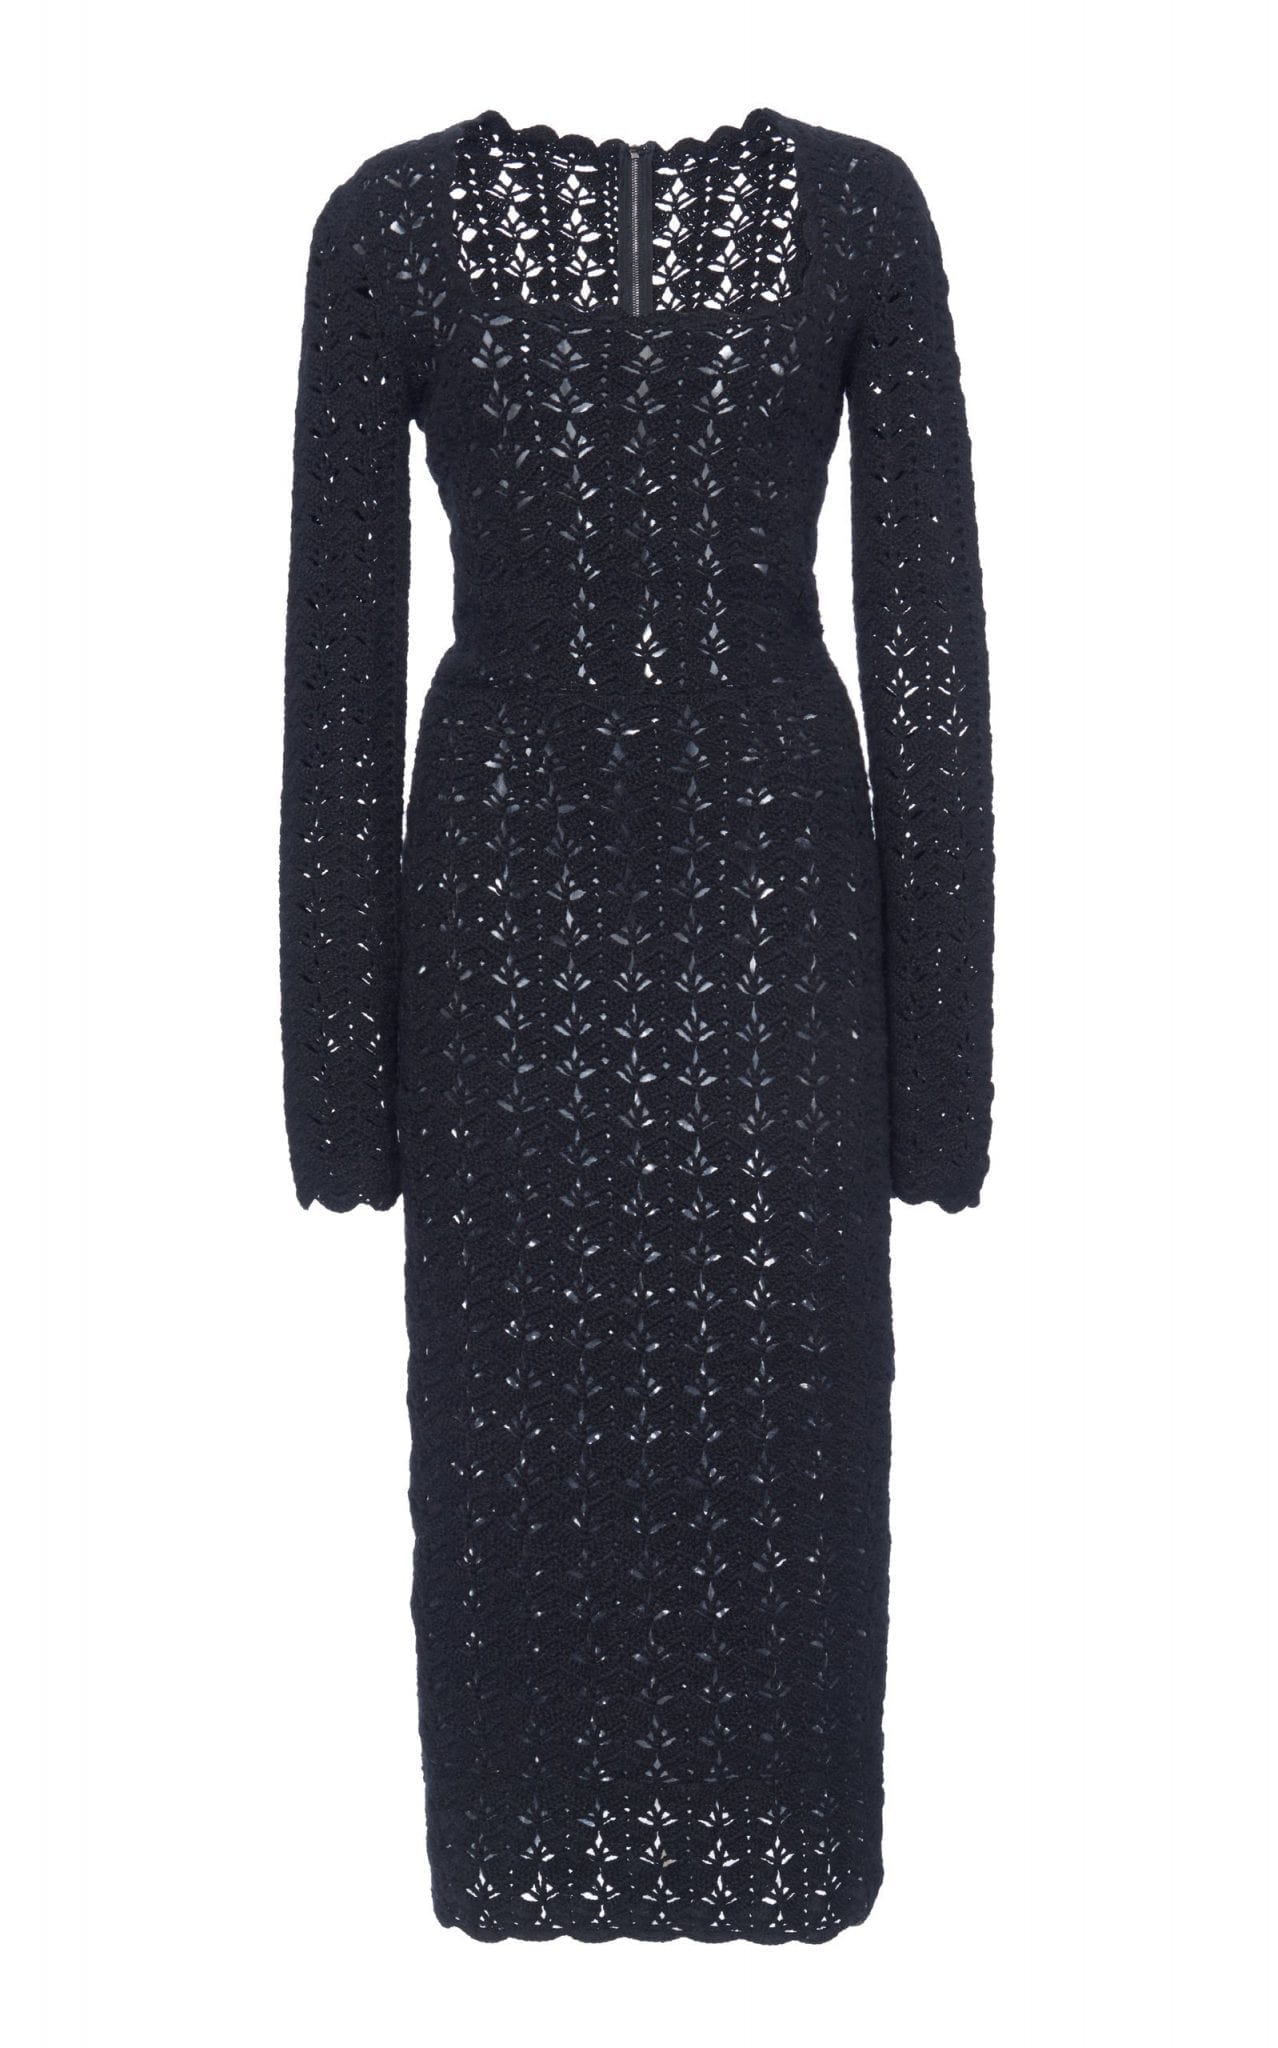 DOLCE & GABBANA Open-Knit Midi Dress